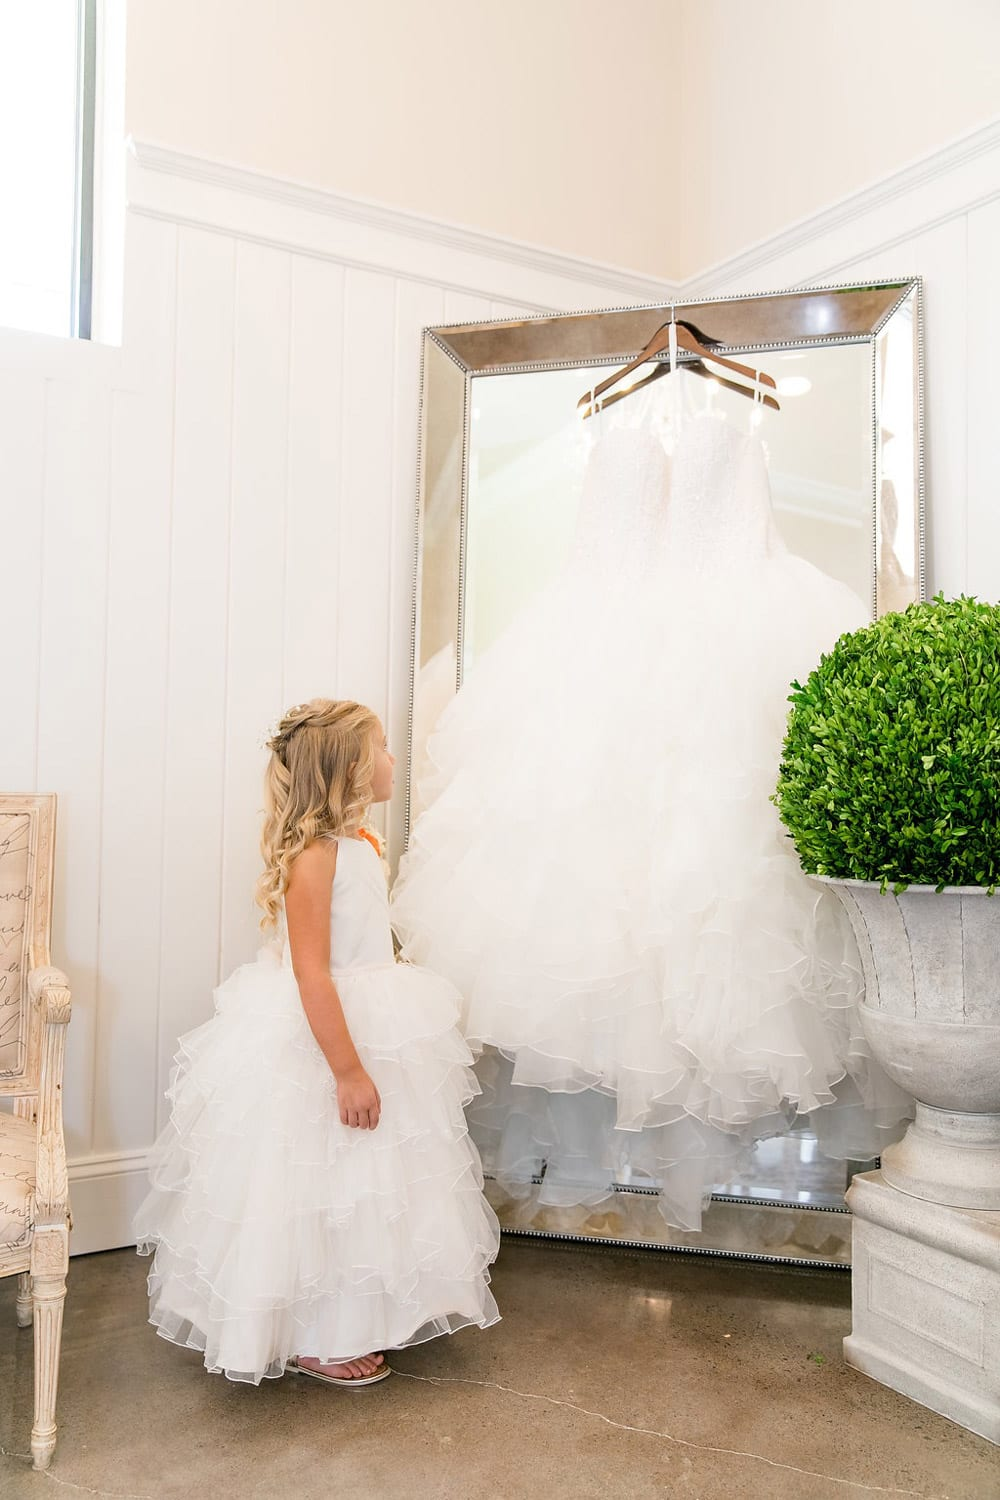 Flower girl looks at dress hanging on mirror